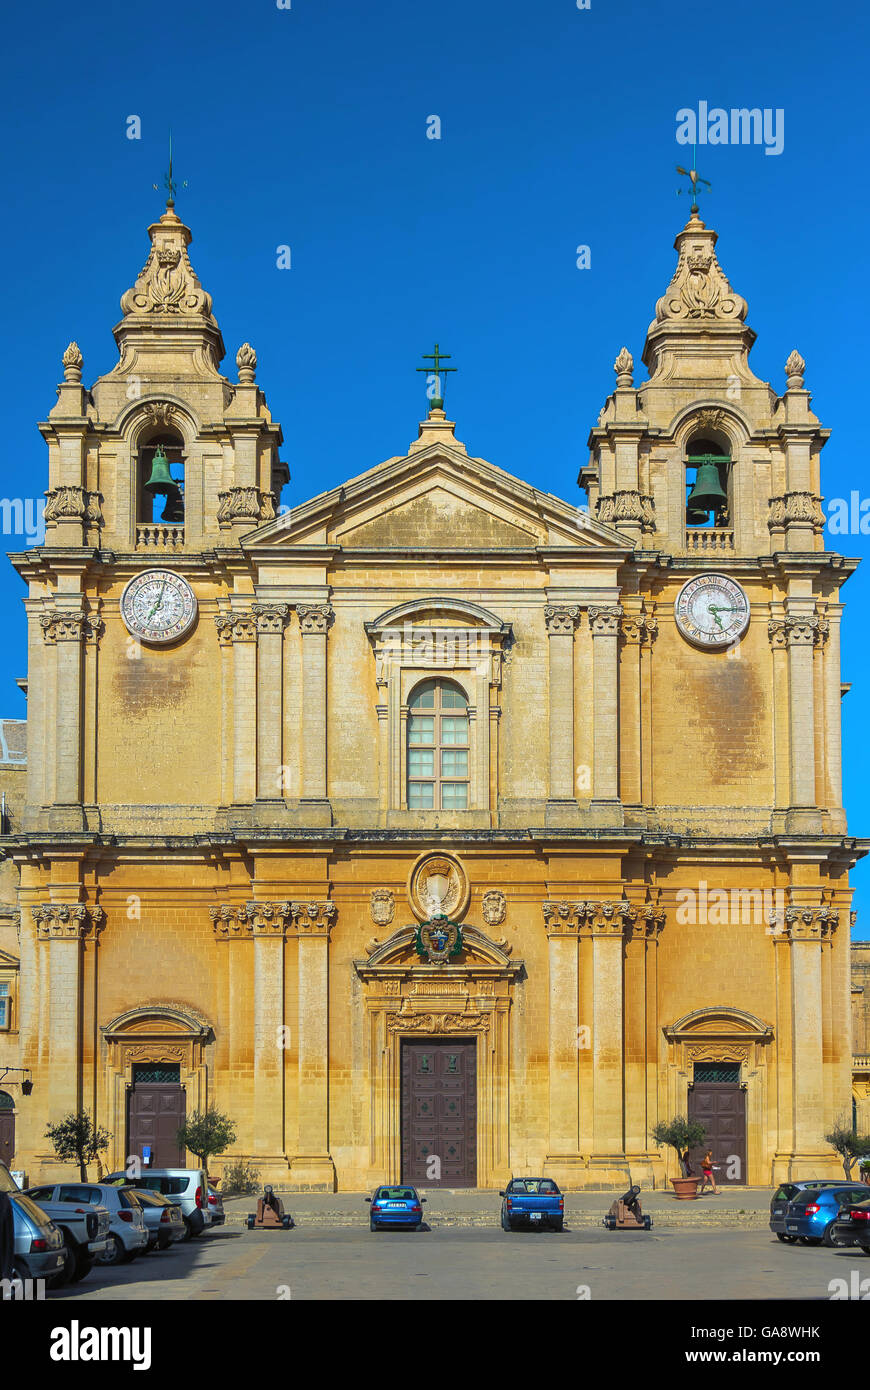 Malta, Mdina - St Paul's cathedral - Stock Image